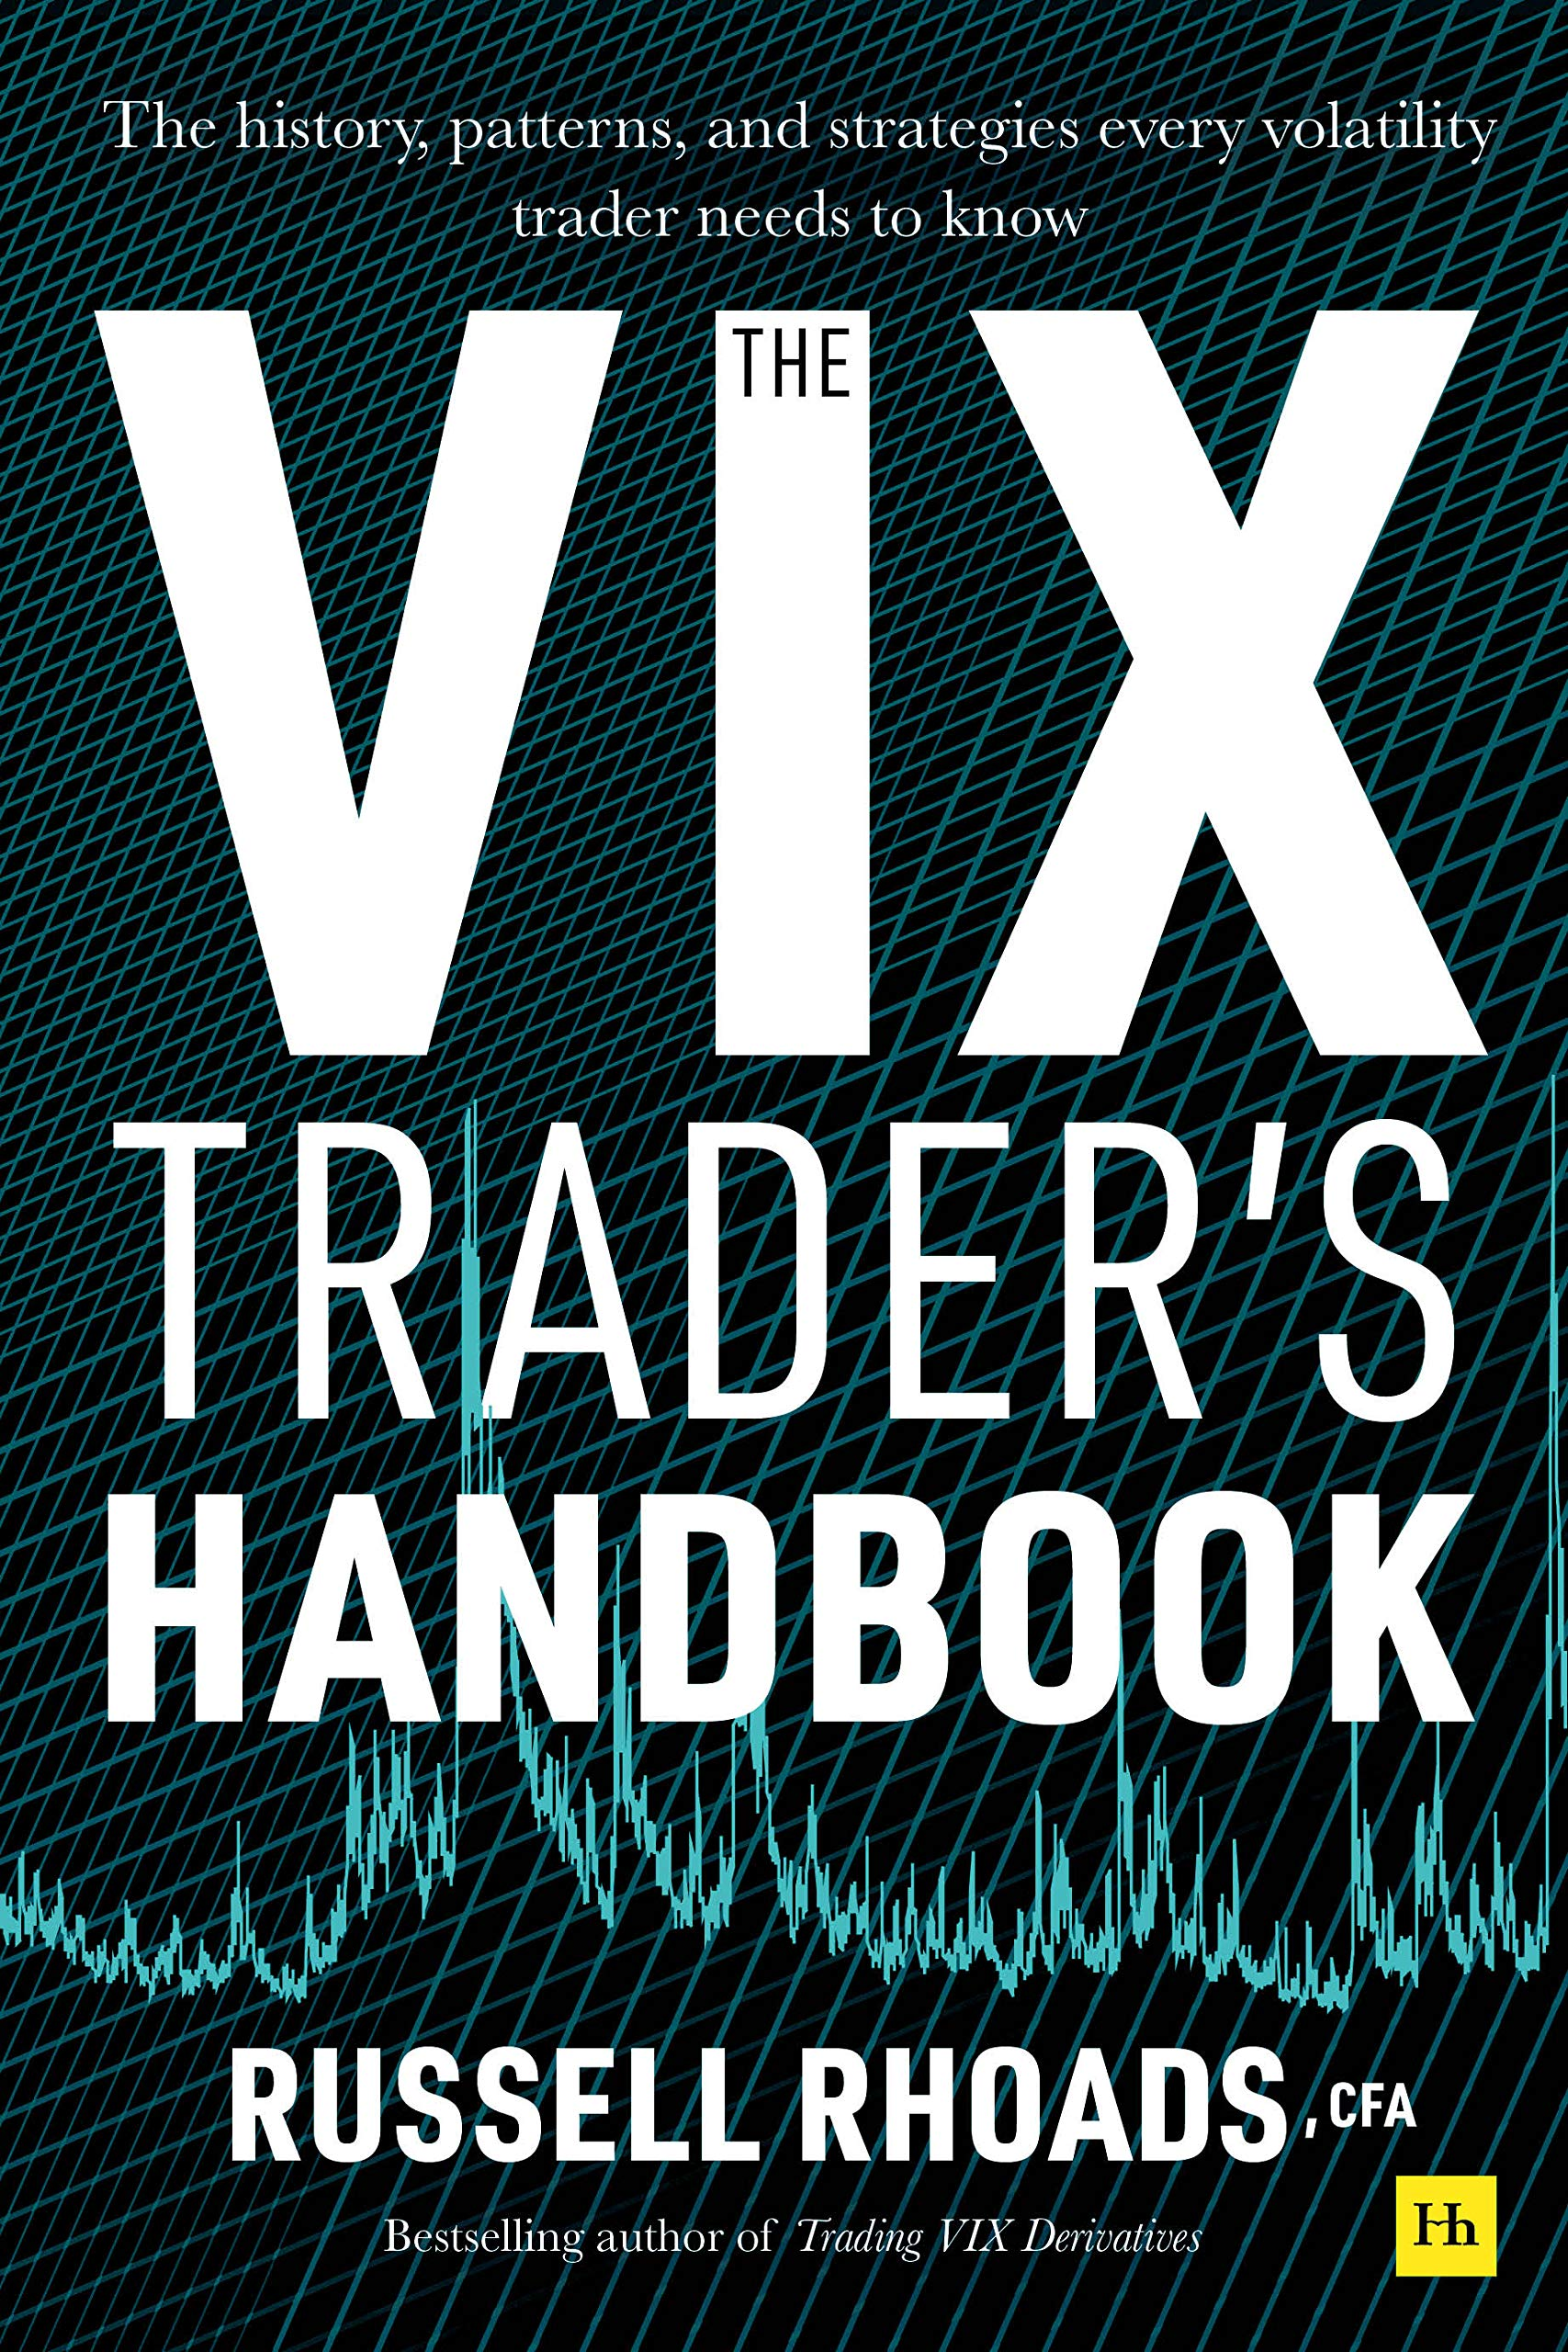 The VIX Trader's Handbook: The history, patterns, and strategies every volatility trader needs to know